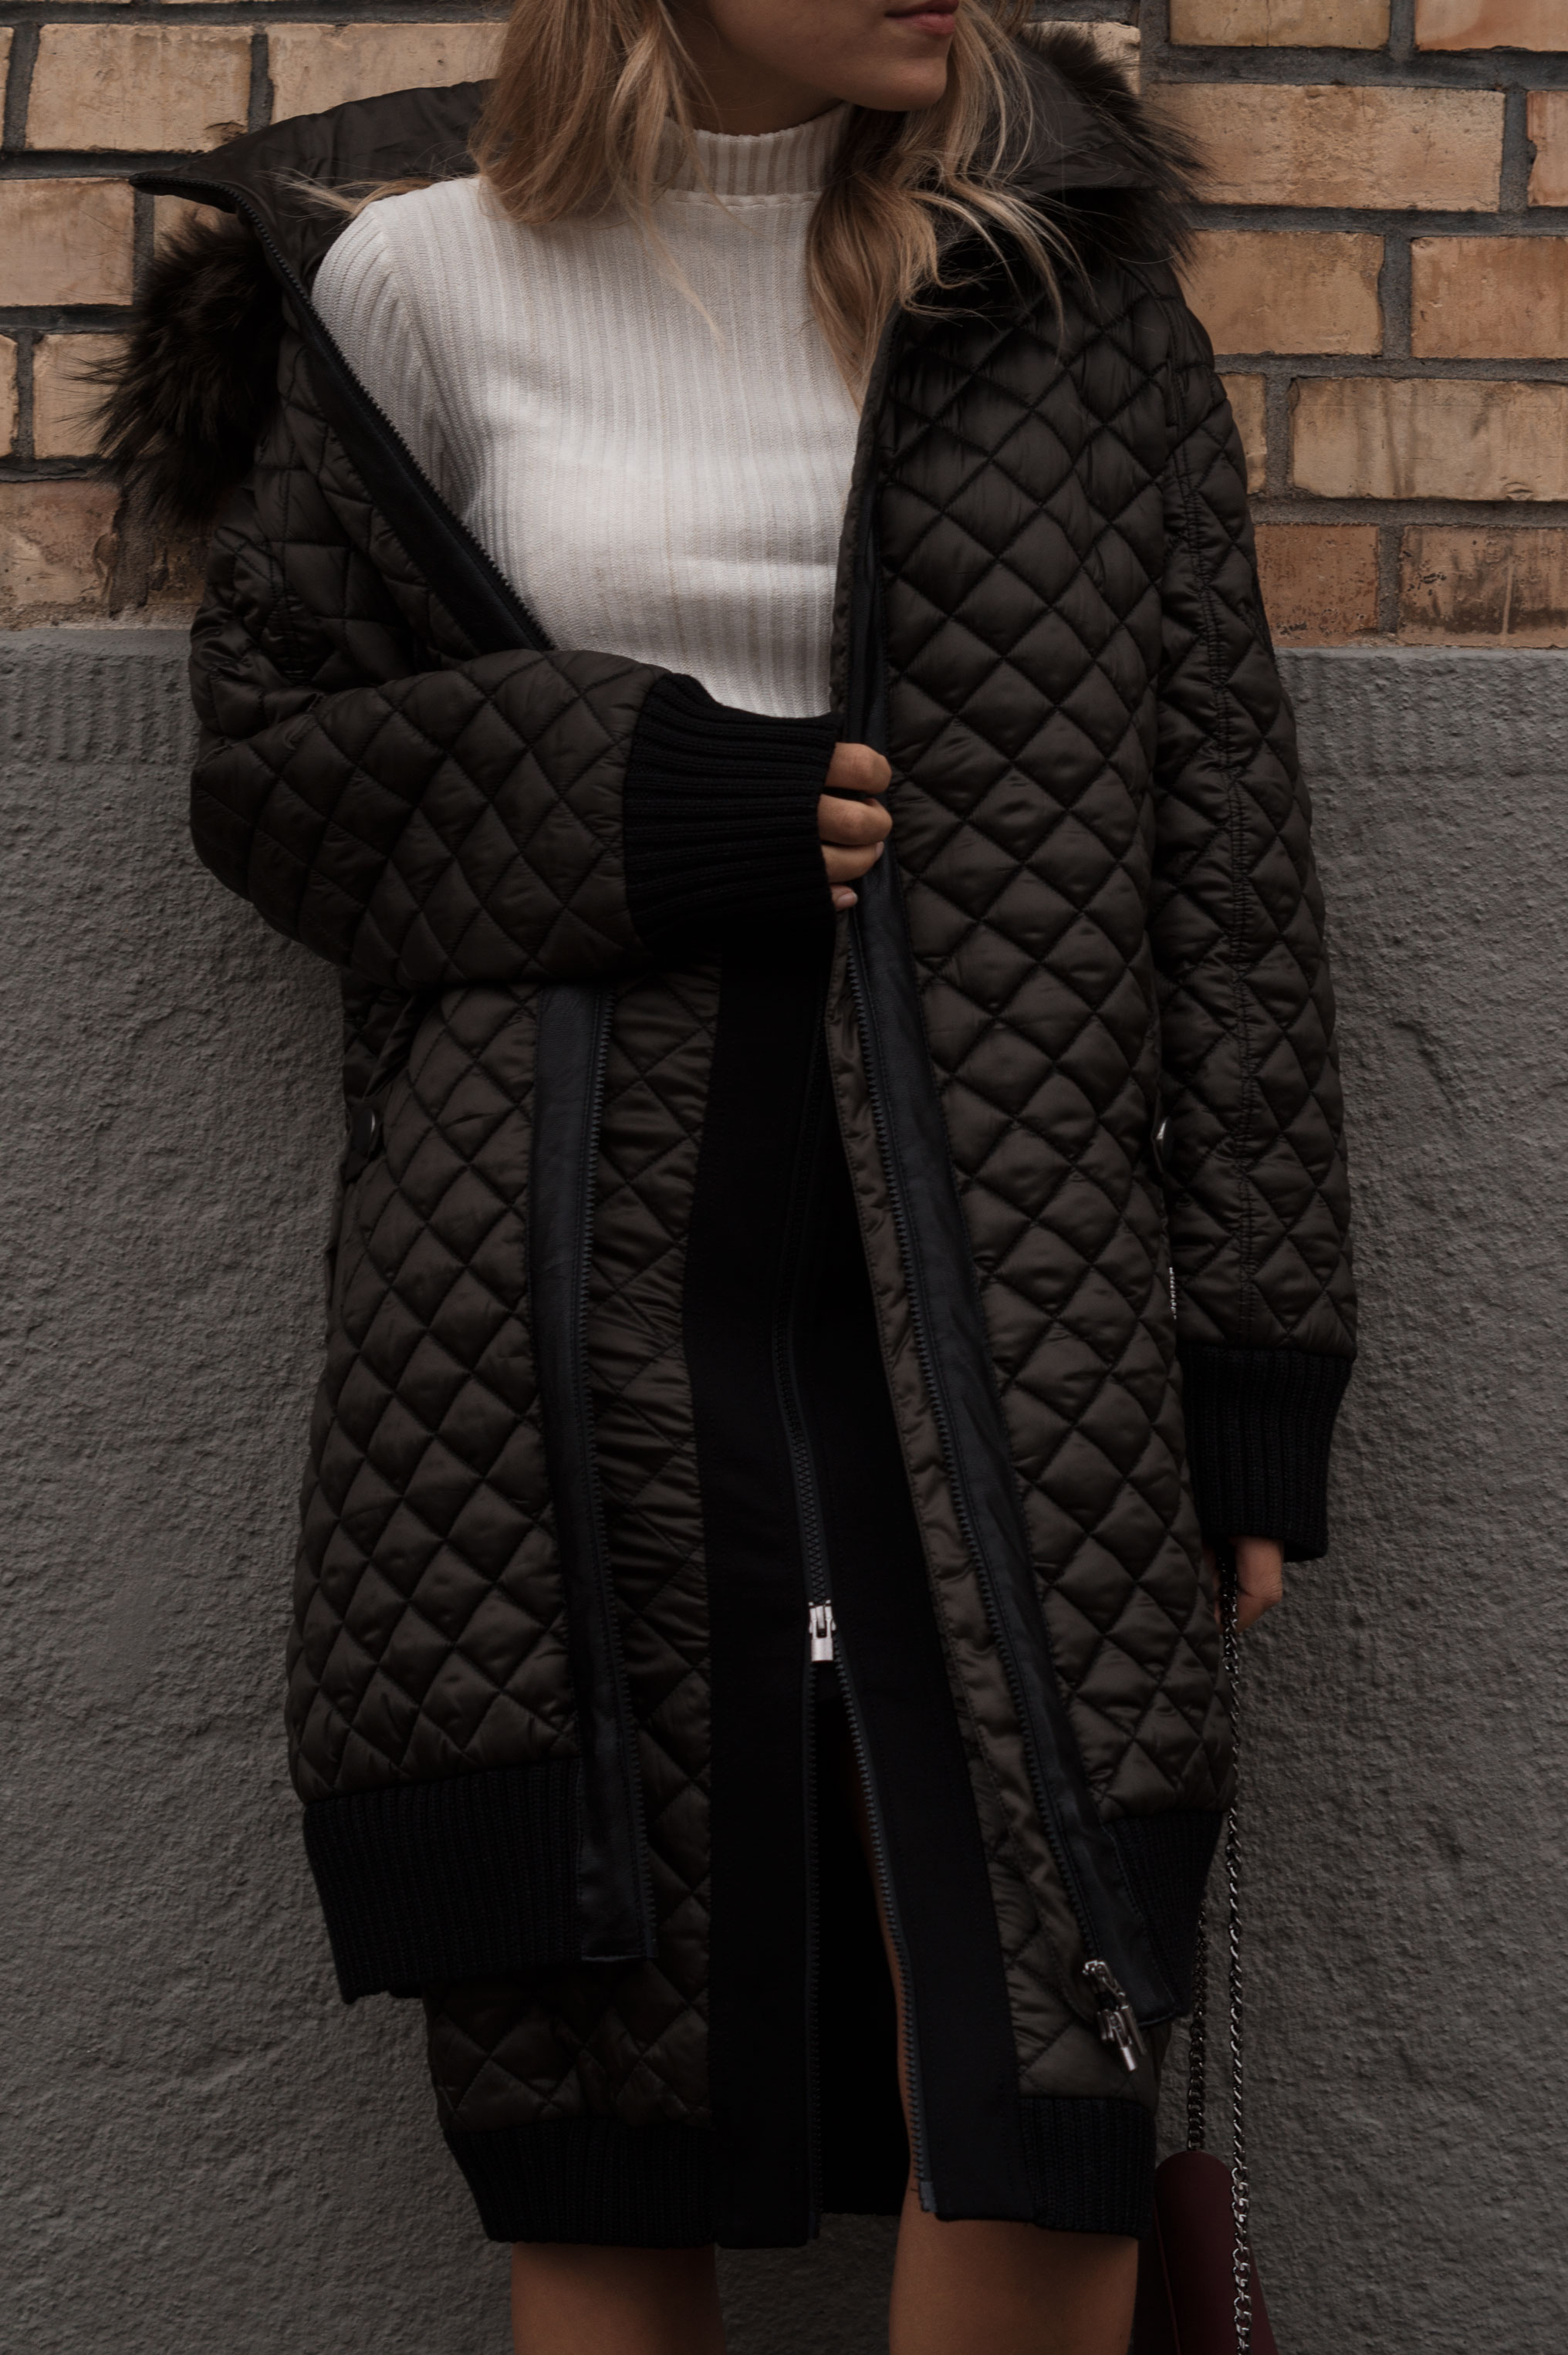 Coat Love Airfield Two Styles Coats Herbstjacke Fall Jacket Fall Outfit Herbstlook Sariety Fashionblogger Modeblog Heidelberg Boots Winter_6